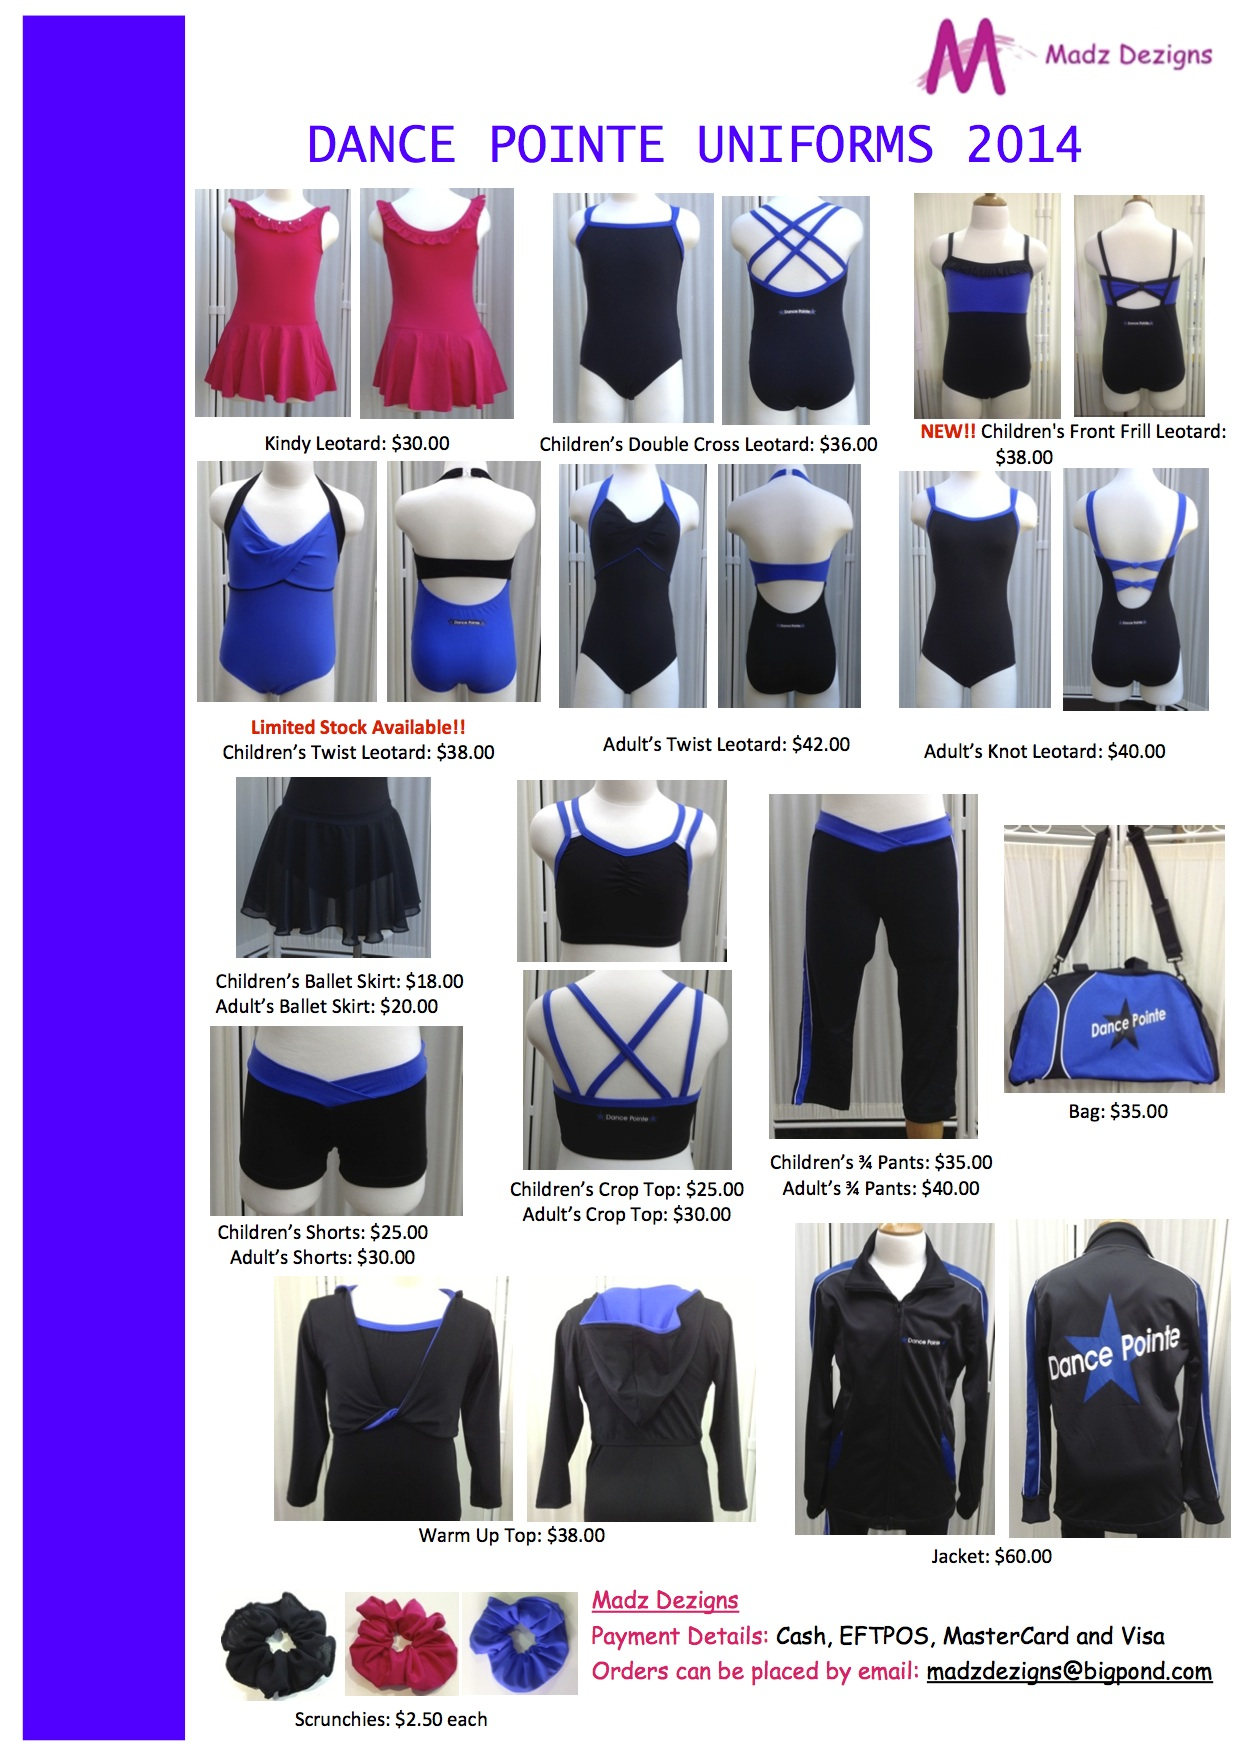 Dance Pointe Flyer (with prices)